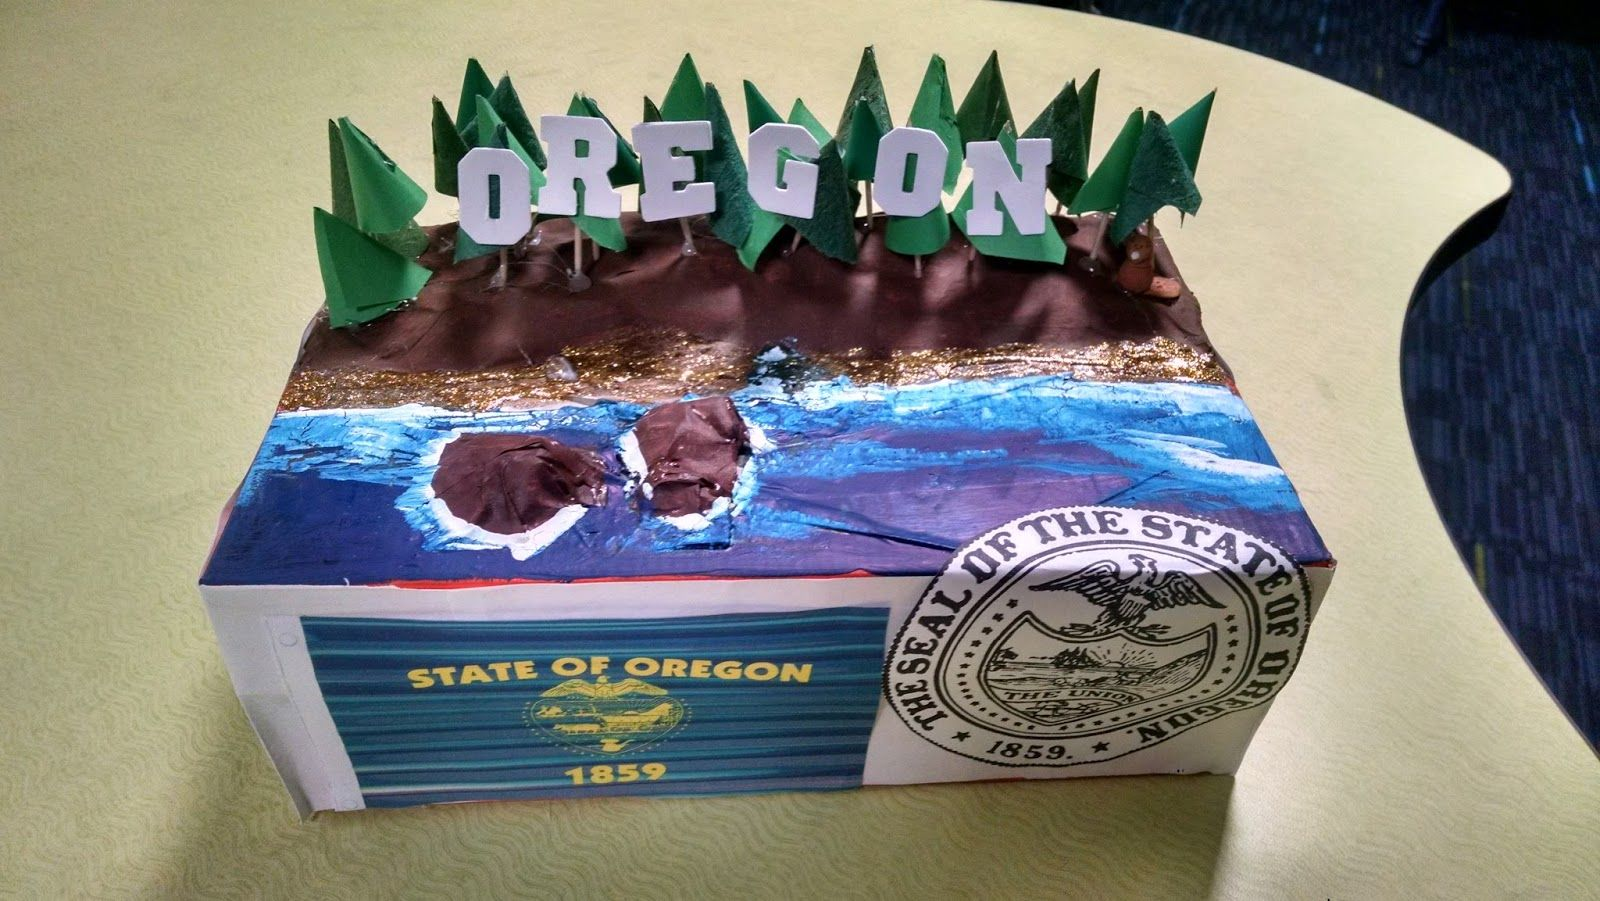 Map Of Oregon State Fairgrounds%0A This is the second year that I have given the assignment of a shoebox float  along with the traditional state report to my students